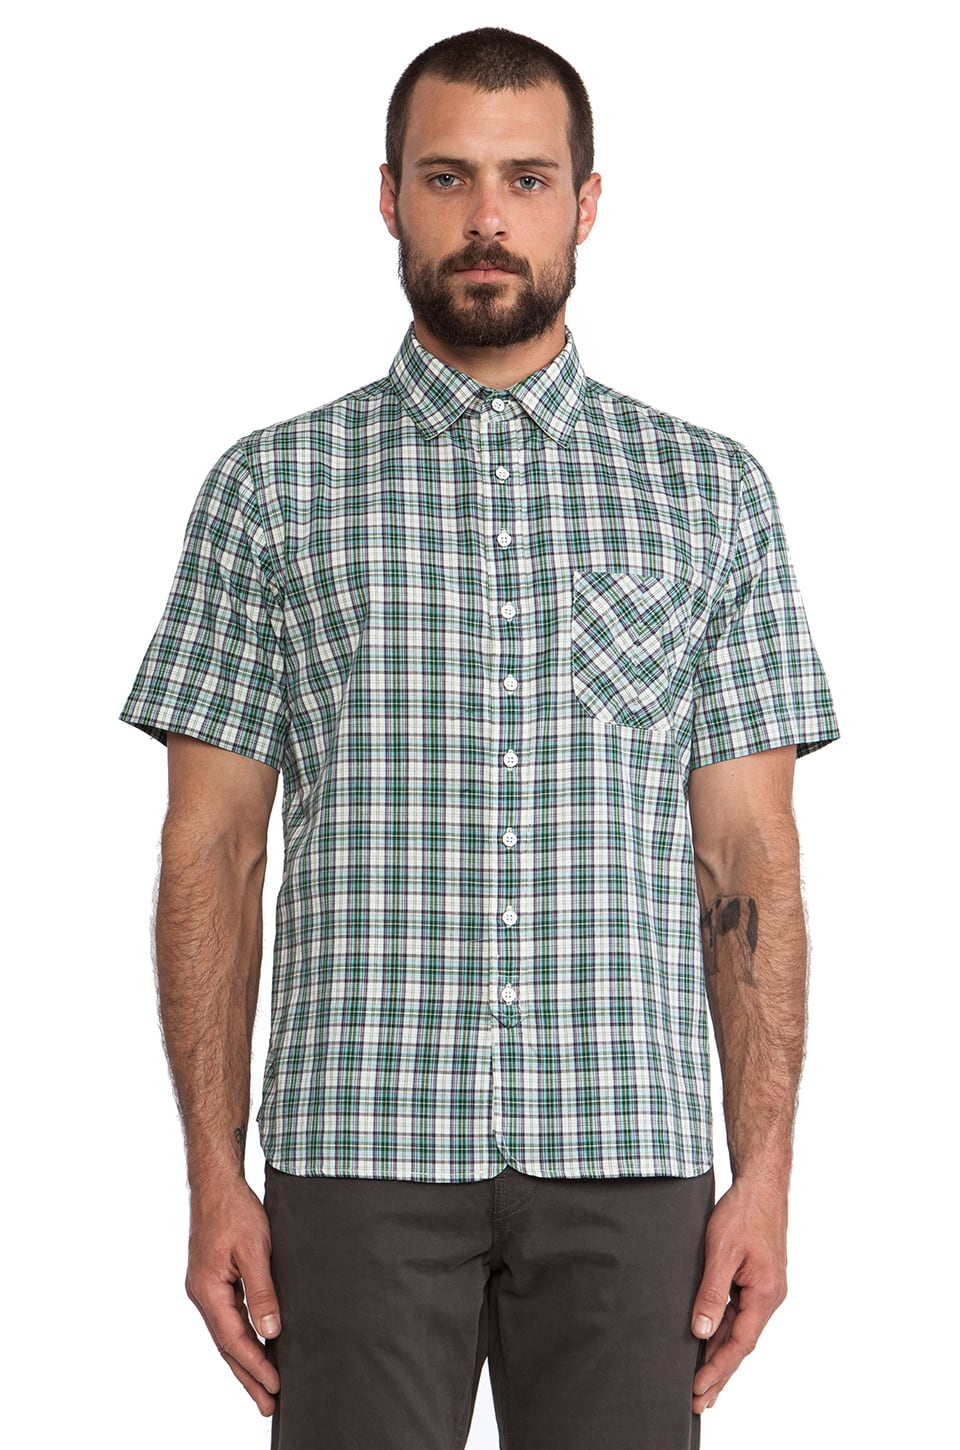 rag & bone Placket Shirt in Teal